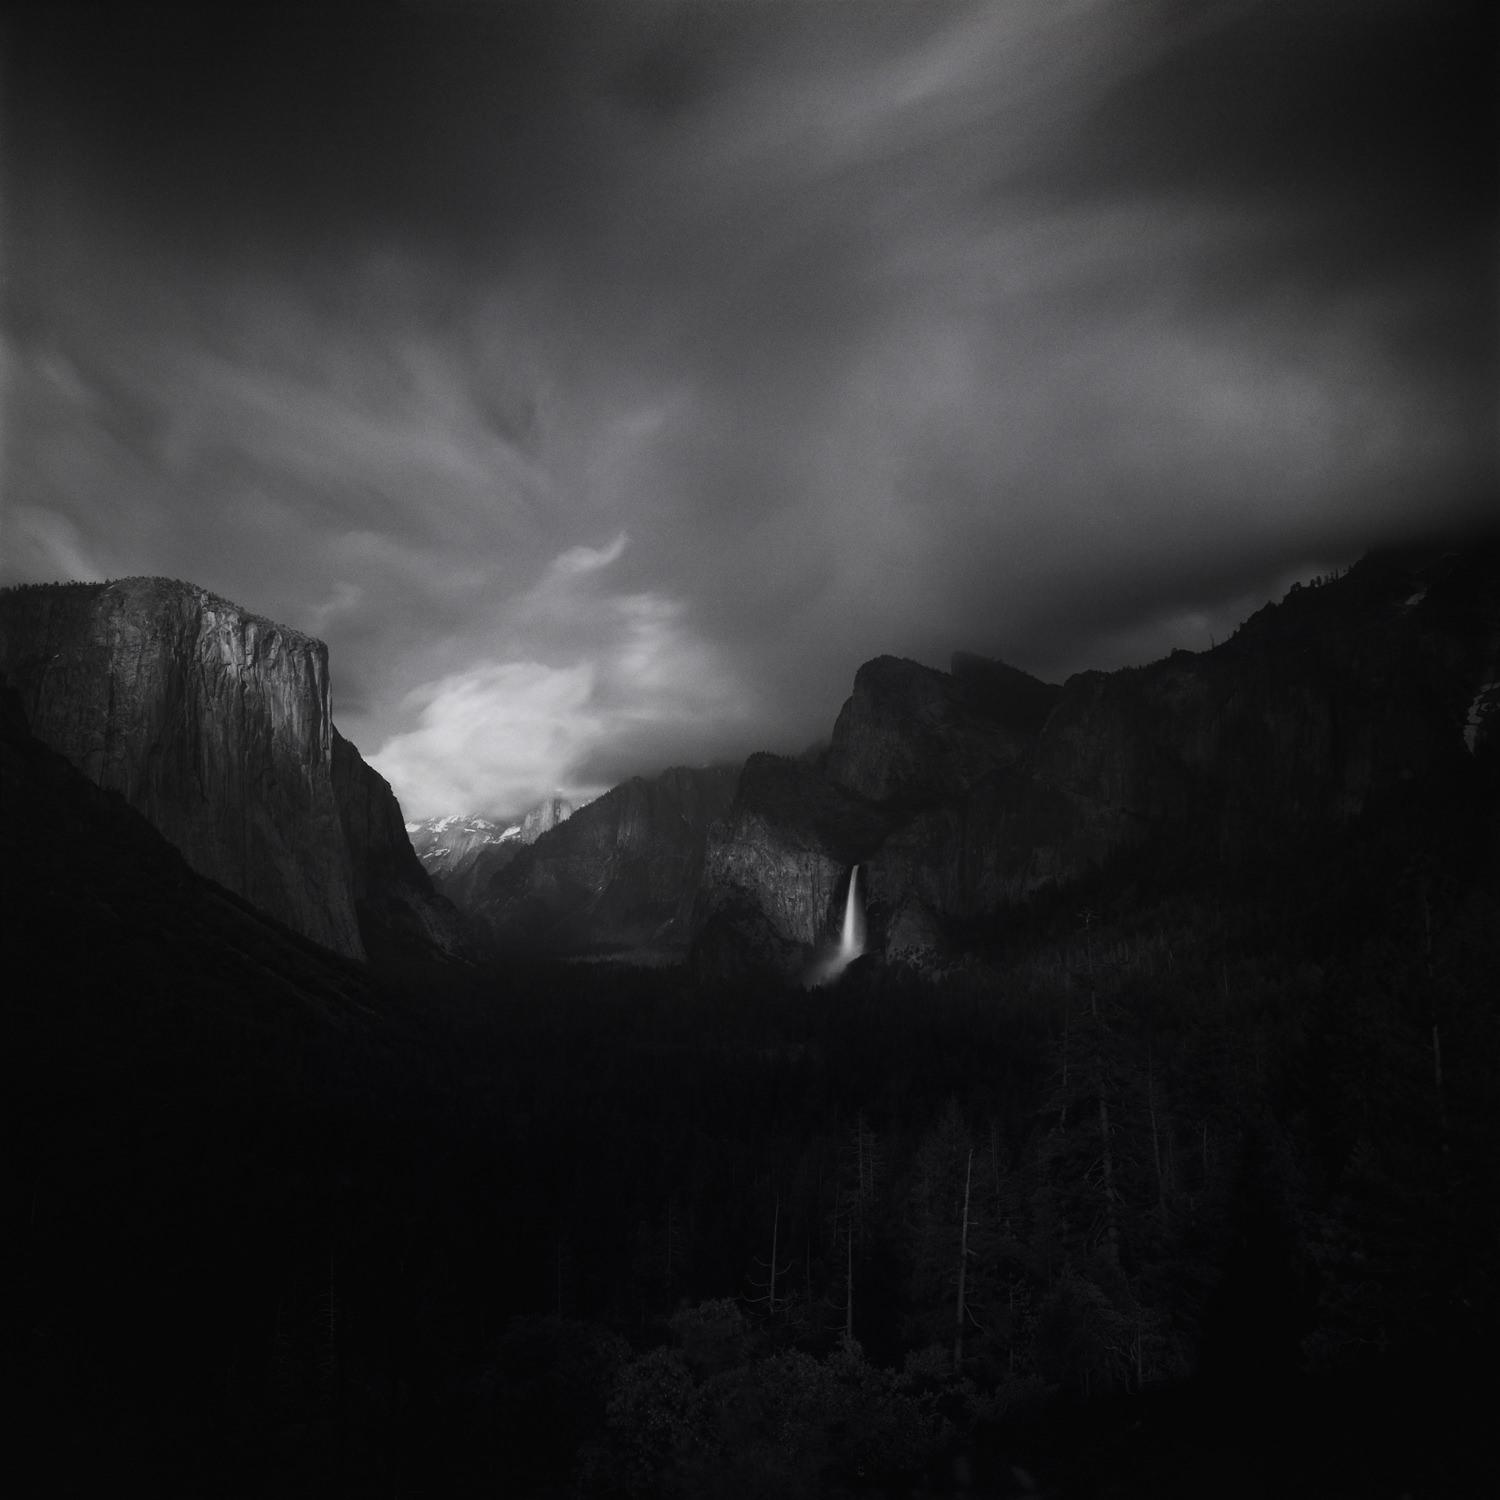 Amongst the Crowd, Yosemite Tunnel View 2019.   Hasselblad Flex-Body. 4 minutes F/11, 10-stop ND, Red 25, Polarizer. Ilford Delta 100 film developed in Kodak X-tol.